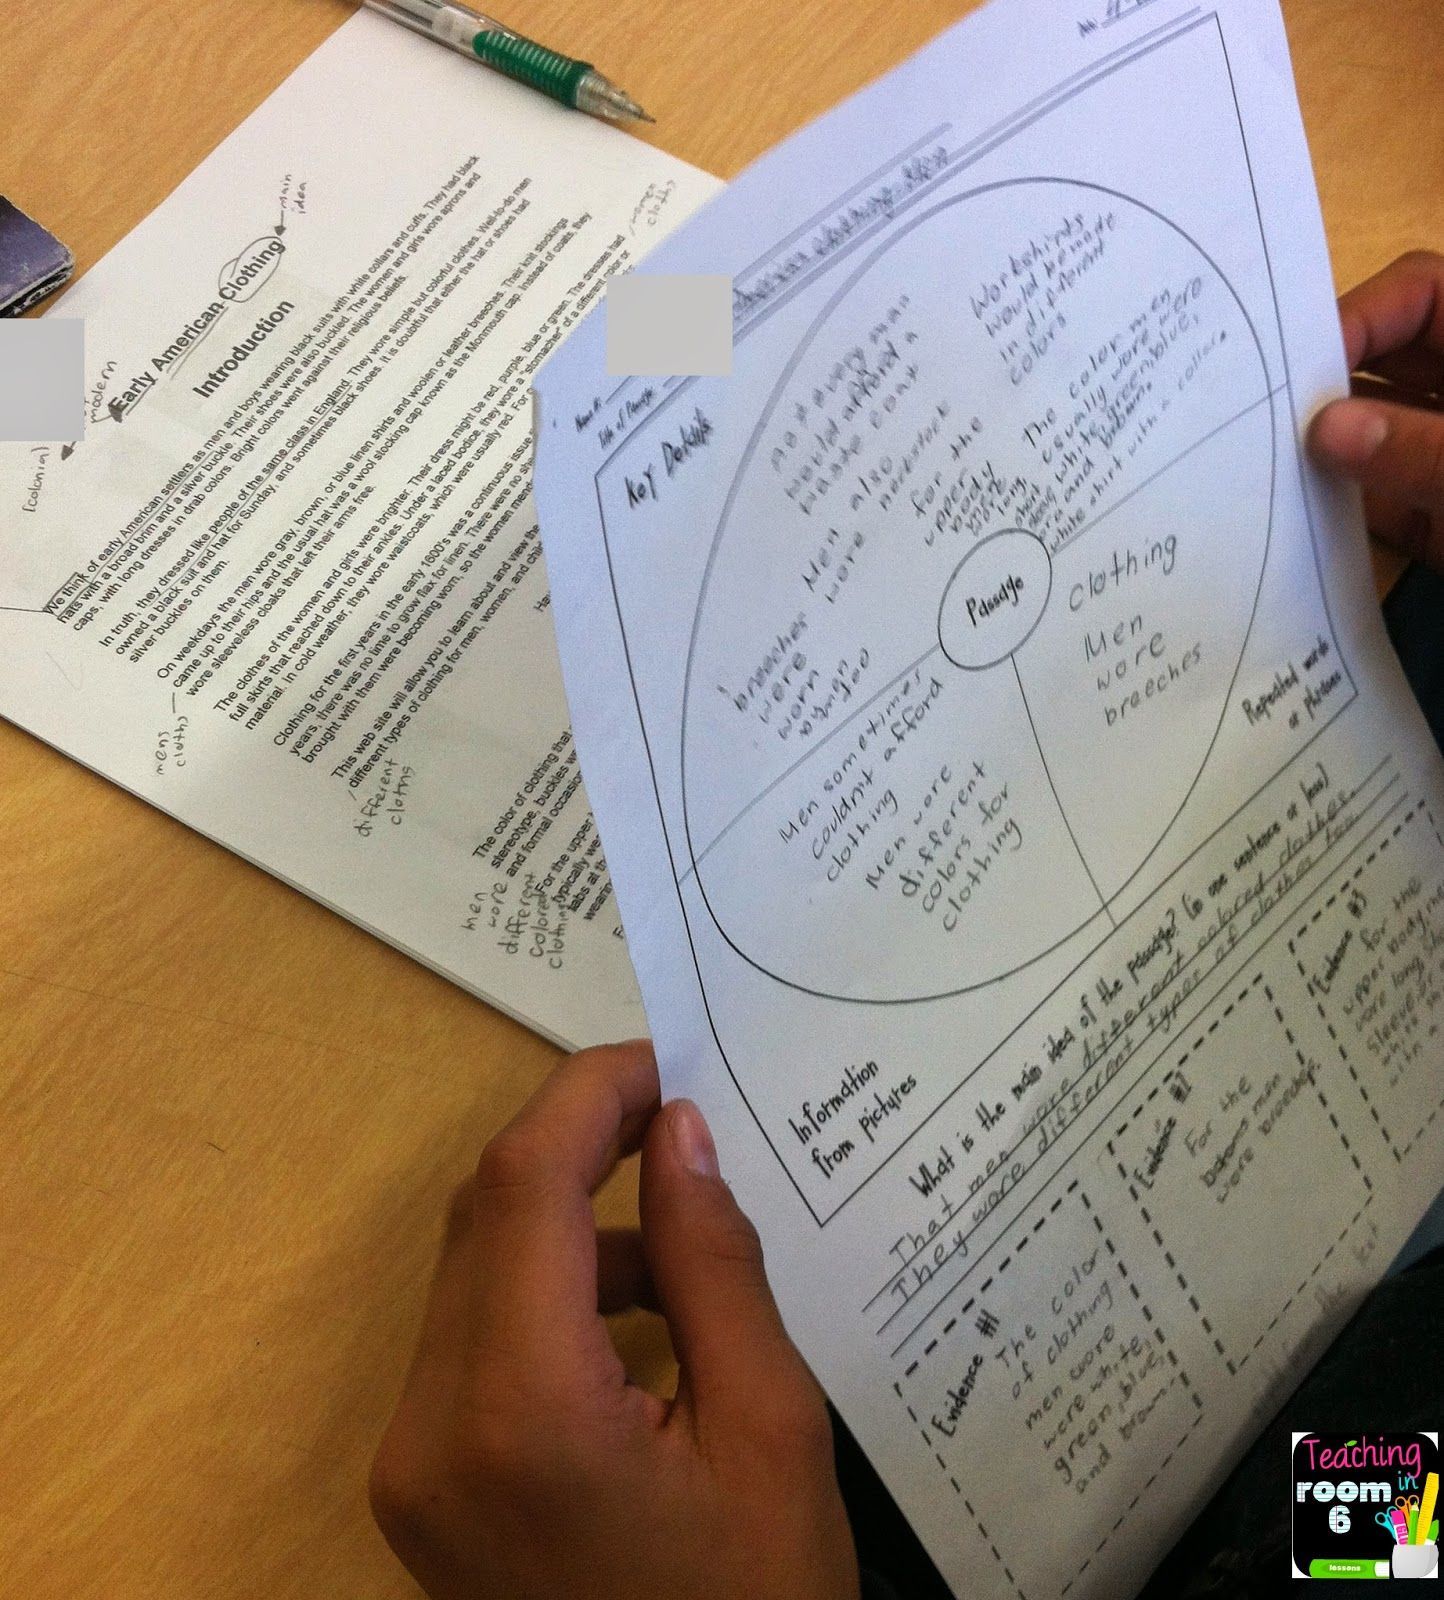 Using A Graphic Organizer To Find The Main Idea Of